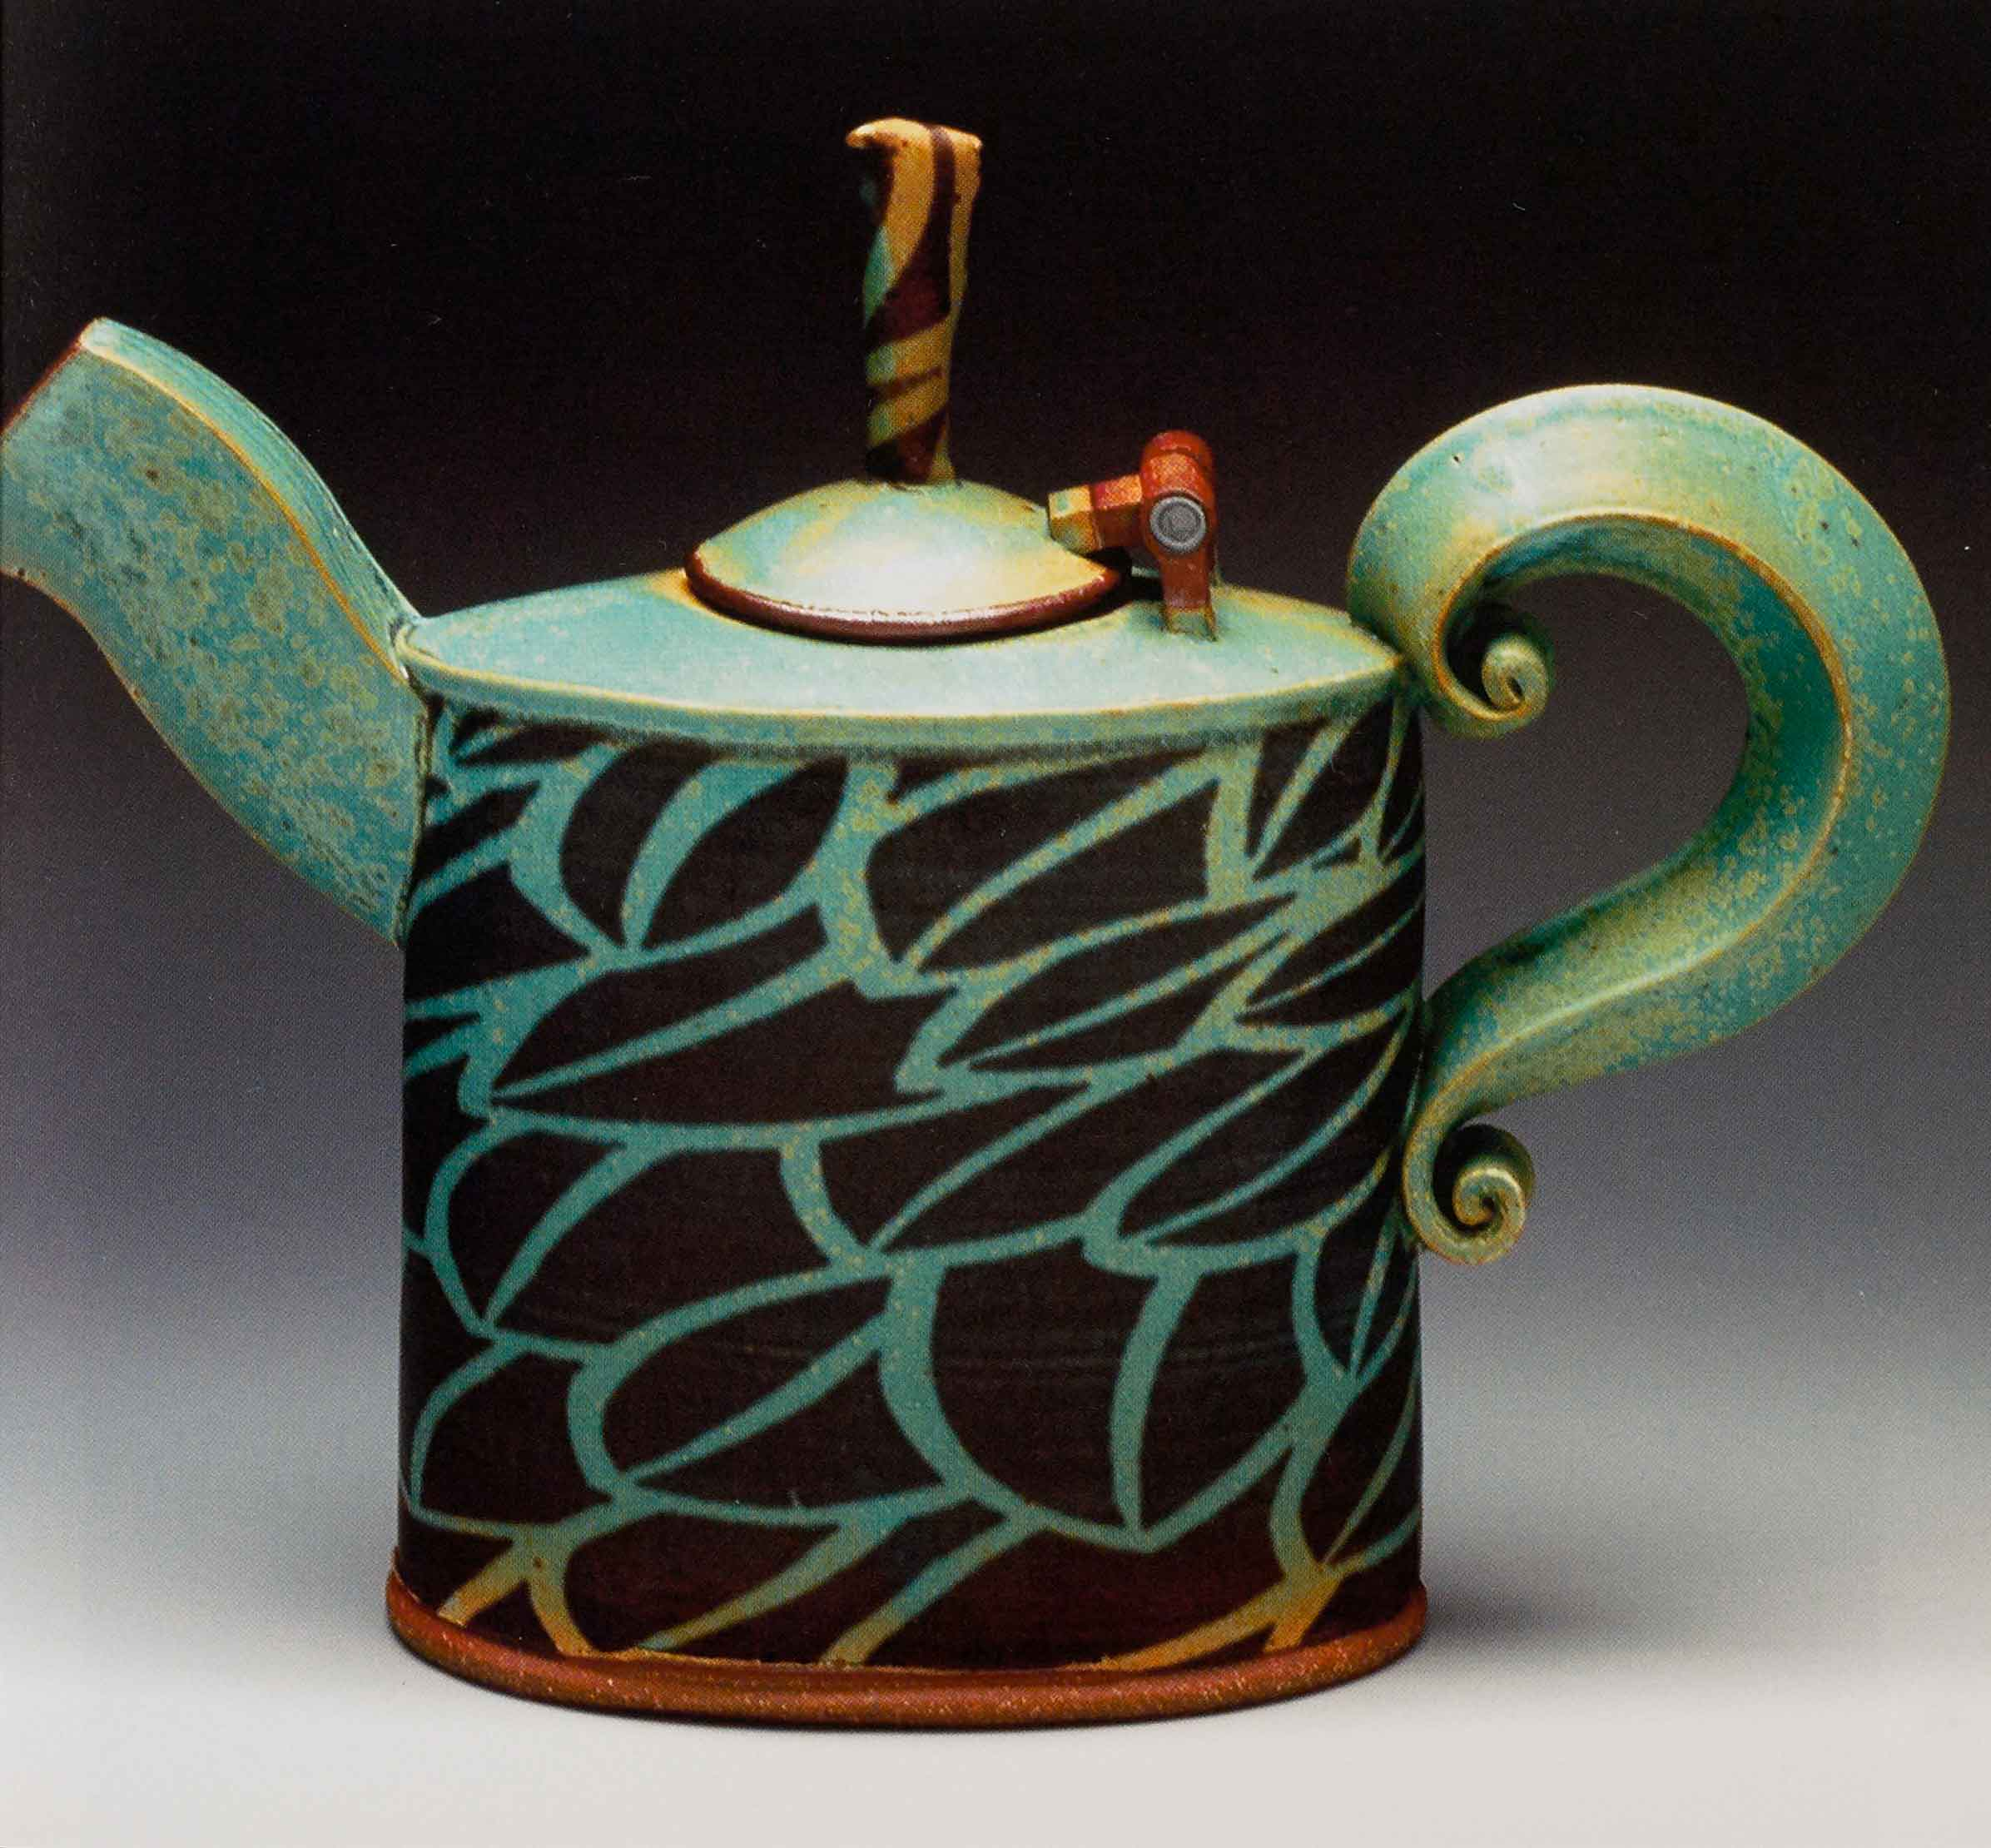 Teapot 10 inches tall. 2006. Stoneware, inlaid black slip, stretched slabs and extrusions, copper matt glaze, Cone 10 reduction.